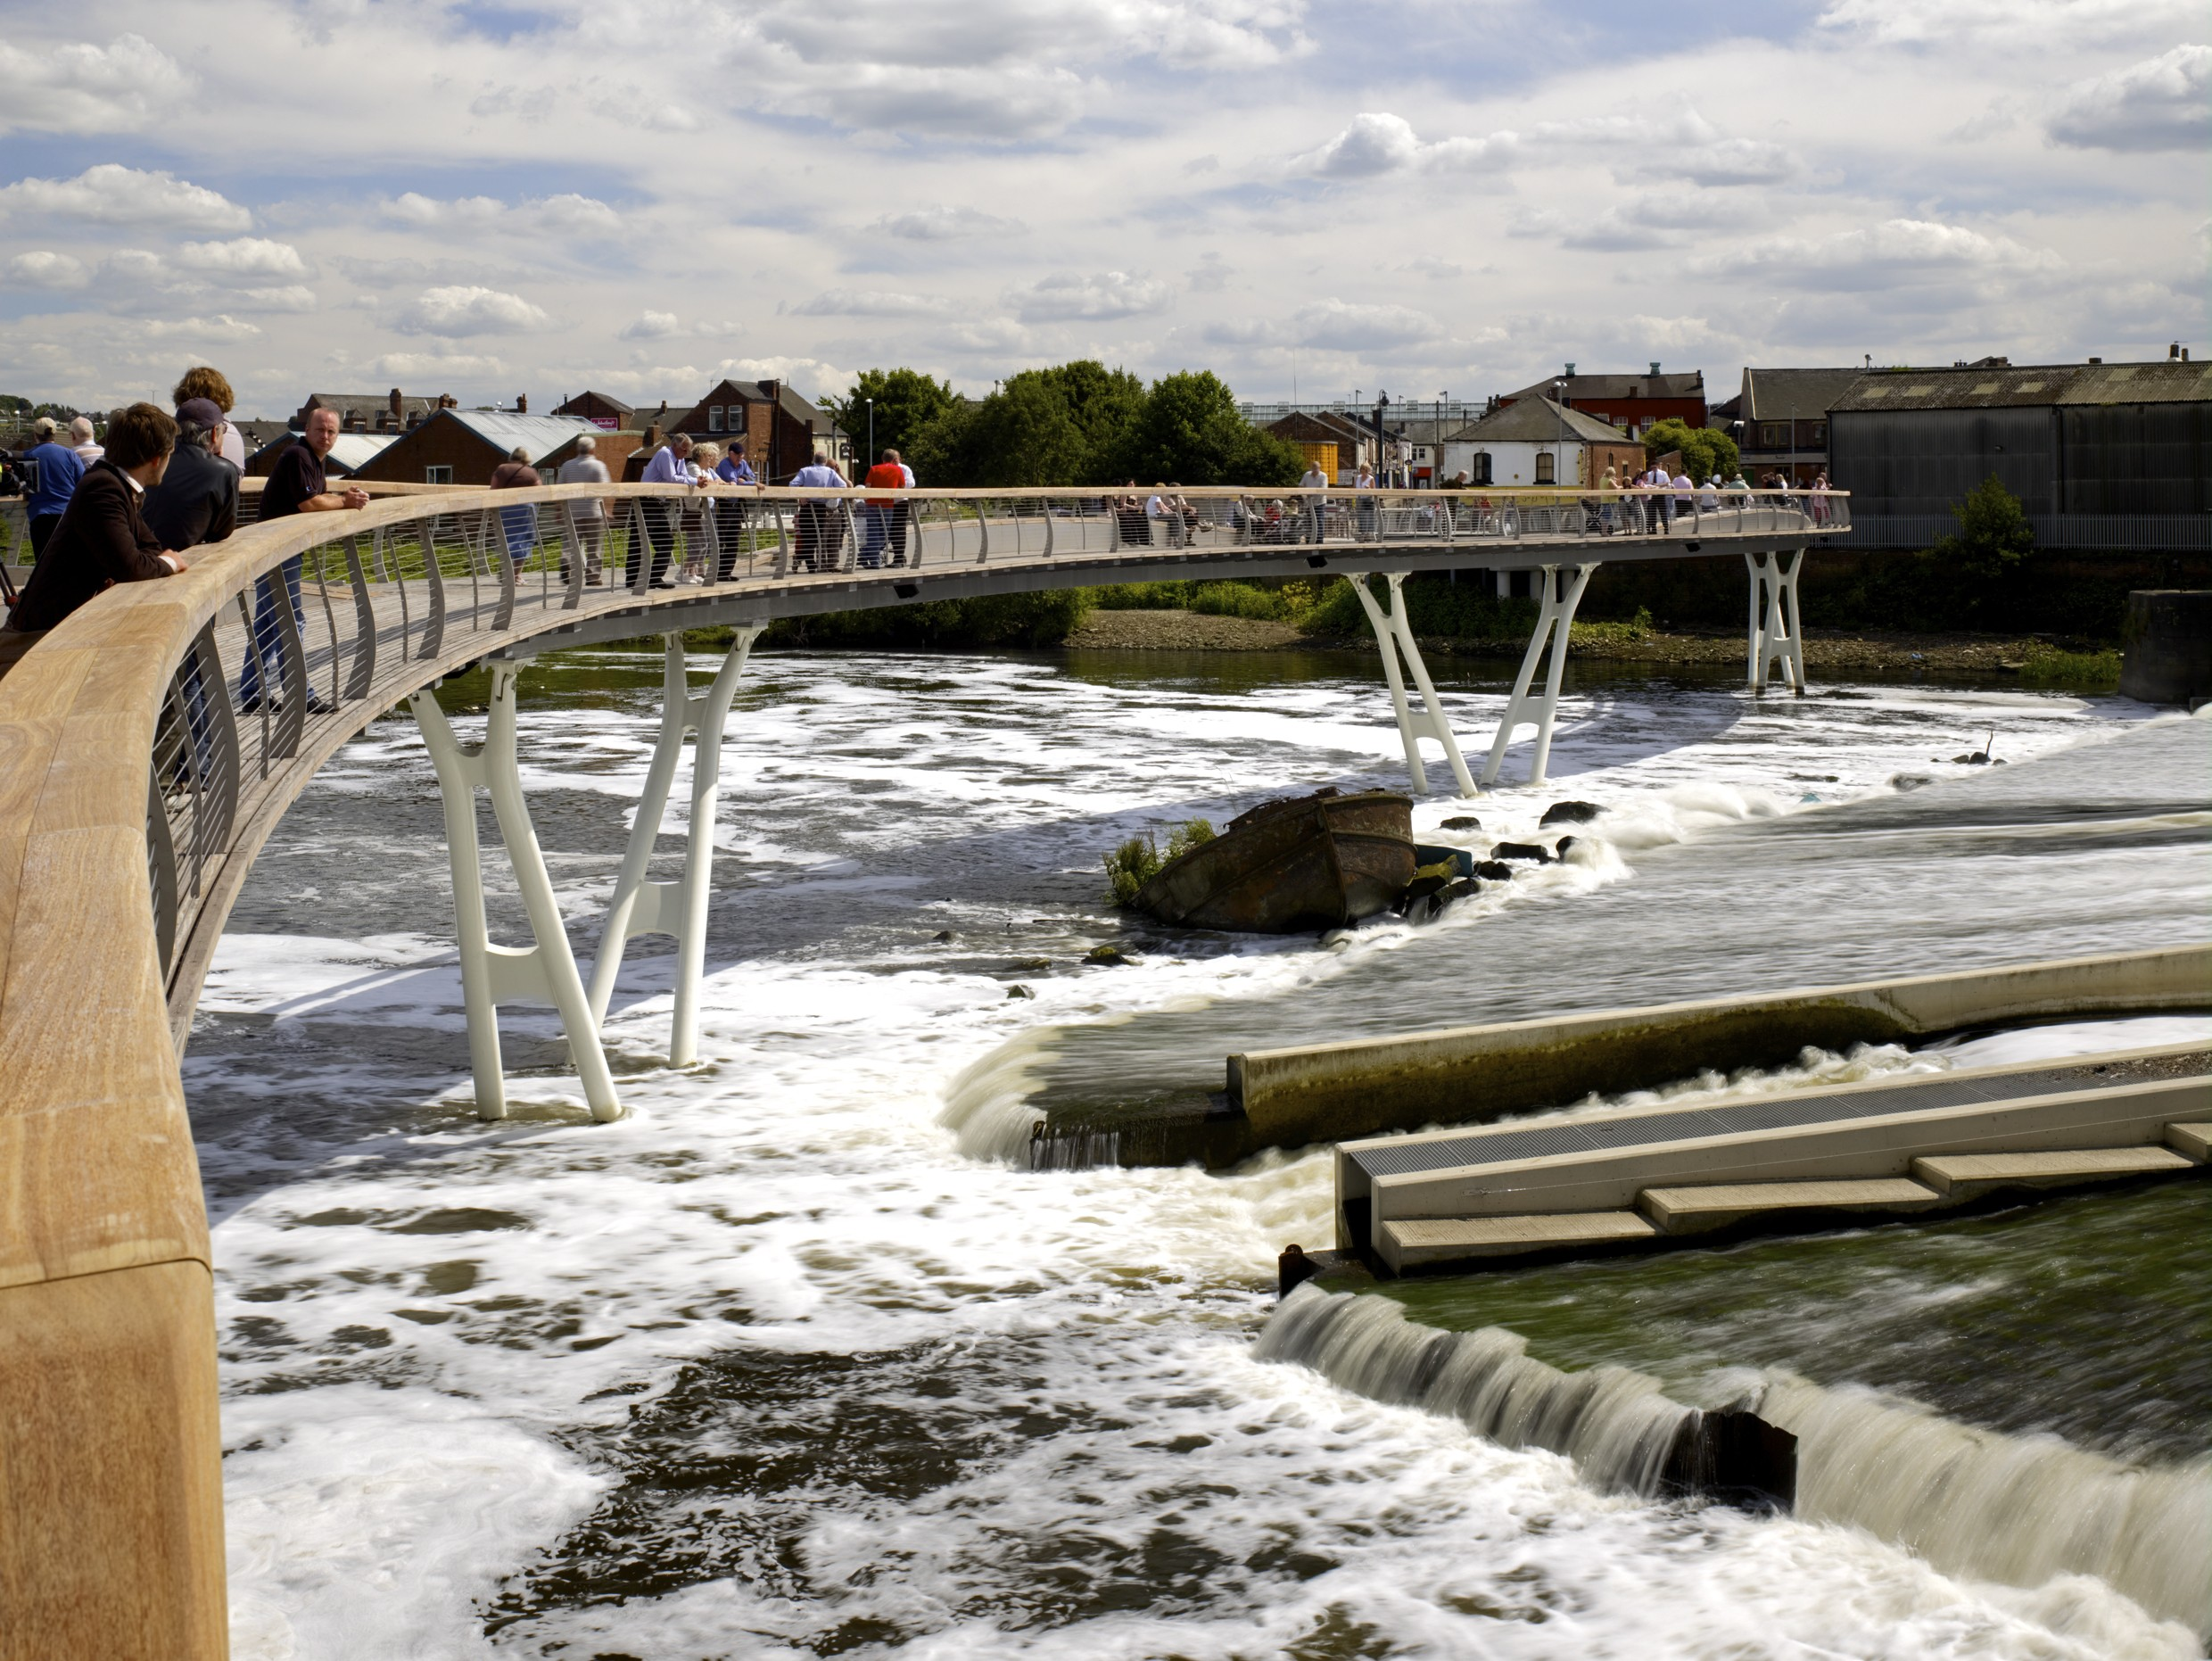 View of bridge over river Weir by T Soar